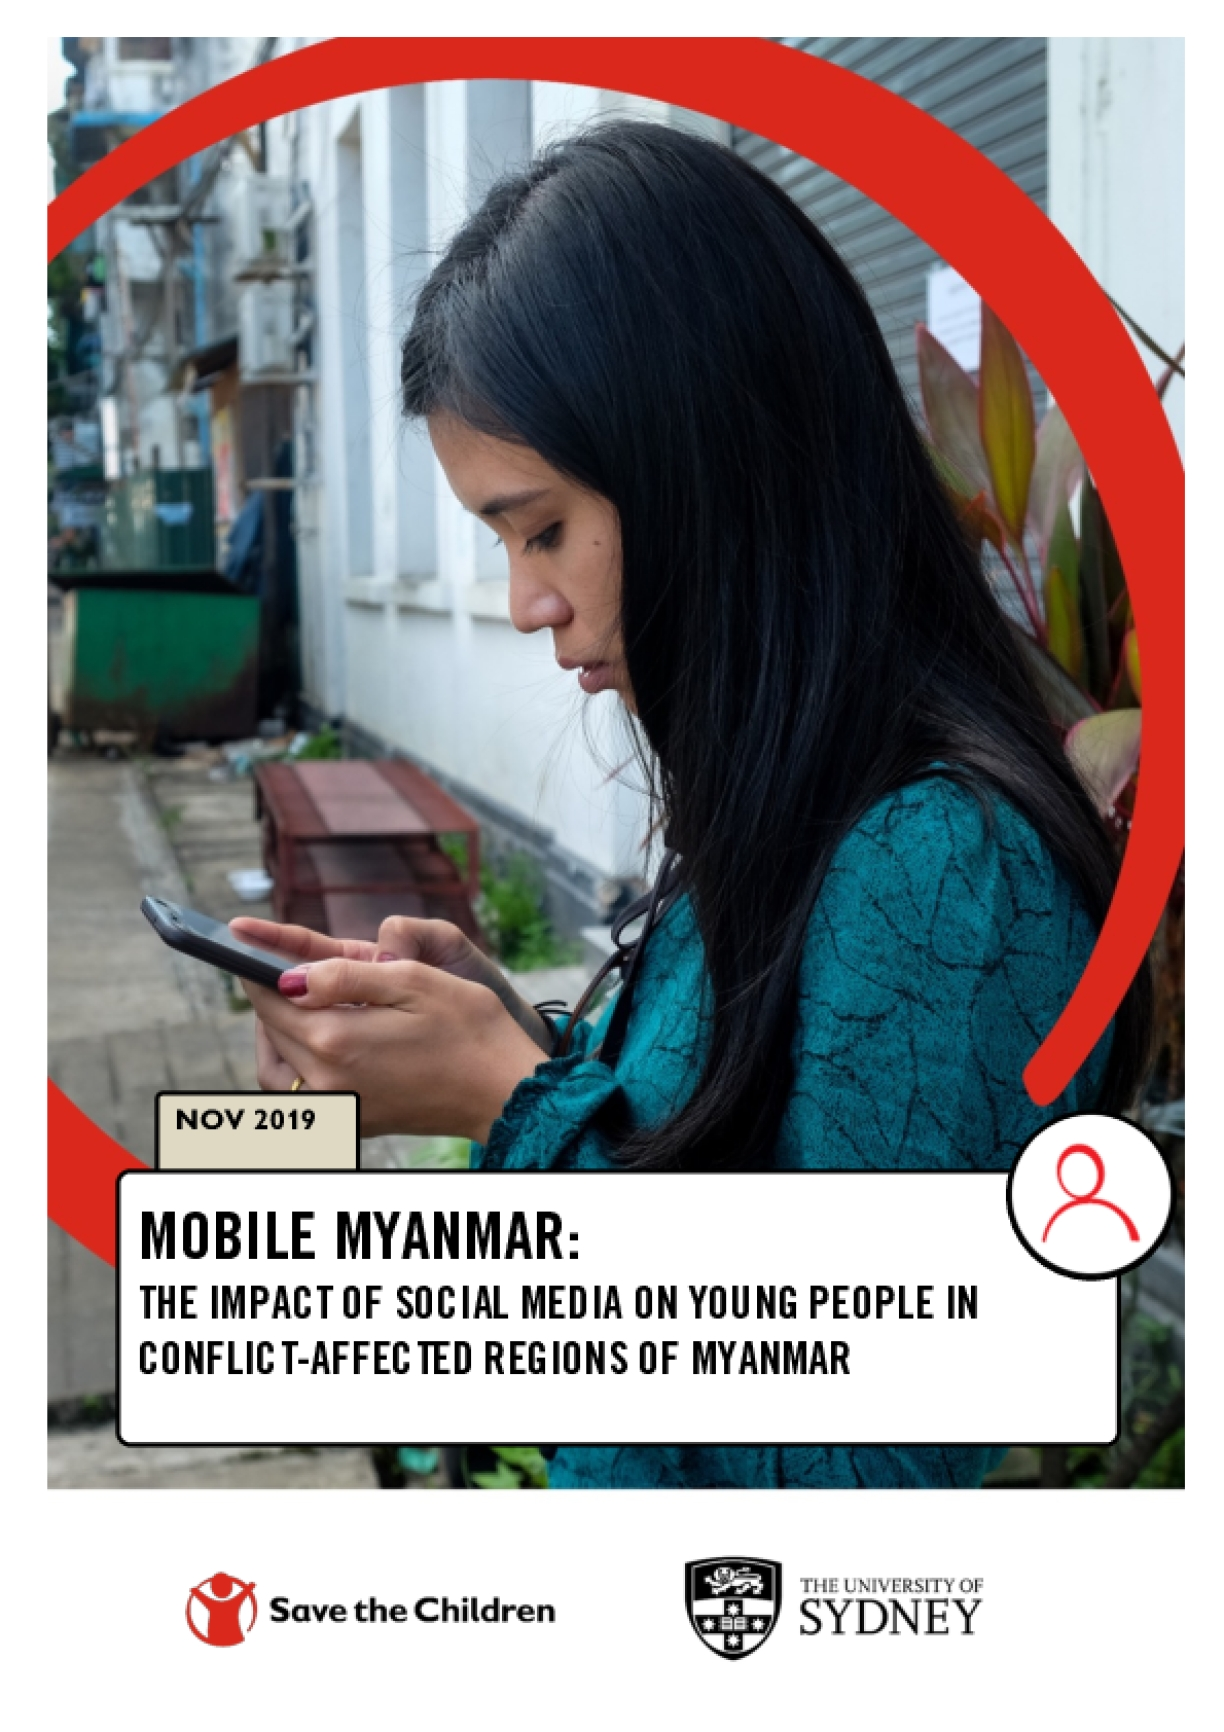 Mobile Myanmar: The Impact of Social Media on Young People in Conflict-affected Regions of Myanmar